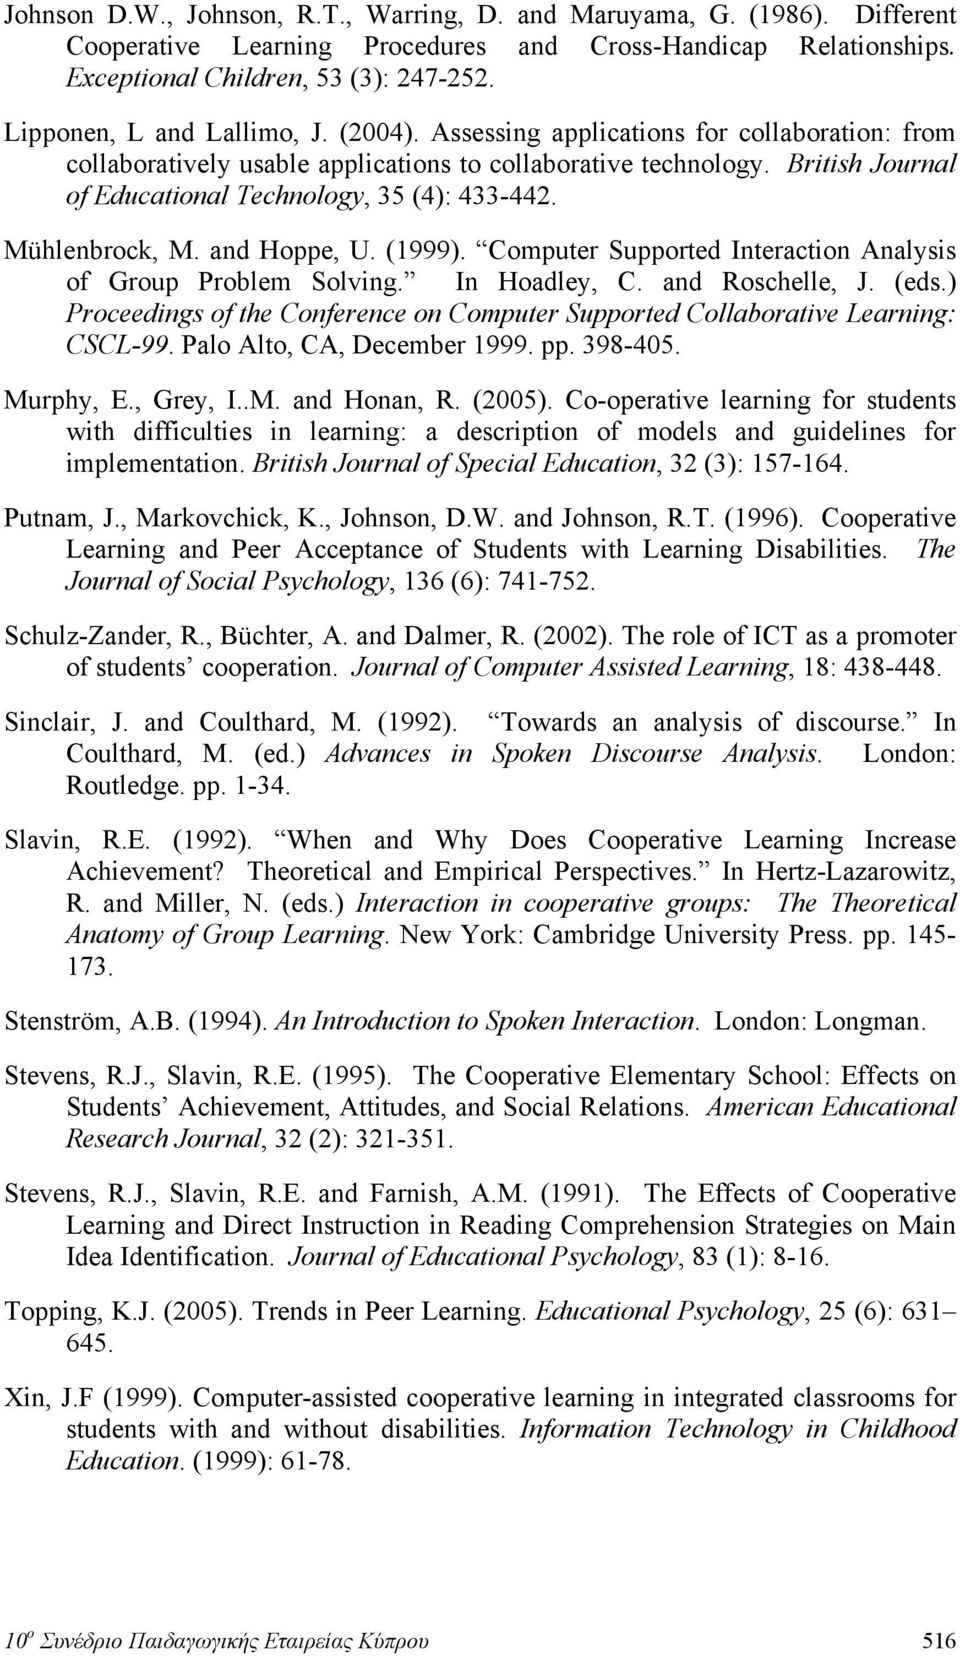 British Journal of Educational Technology, 35 (4): 433-442. Mühlenbrock, M. and Hoppe, U. (1999). Computer Supported Interaction Analysis of Group Problem Solving. In Hoadley, C. and Roschelle, J.